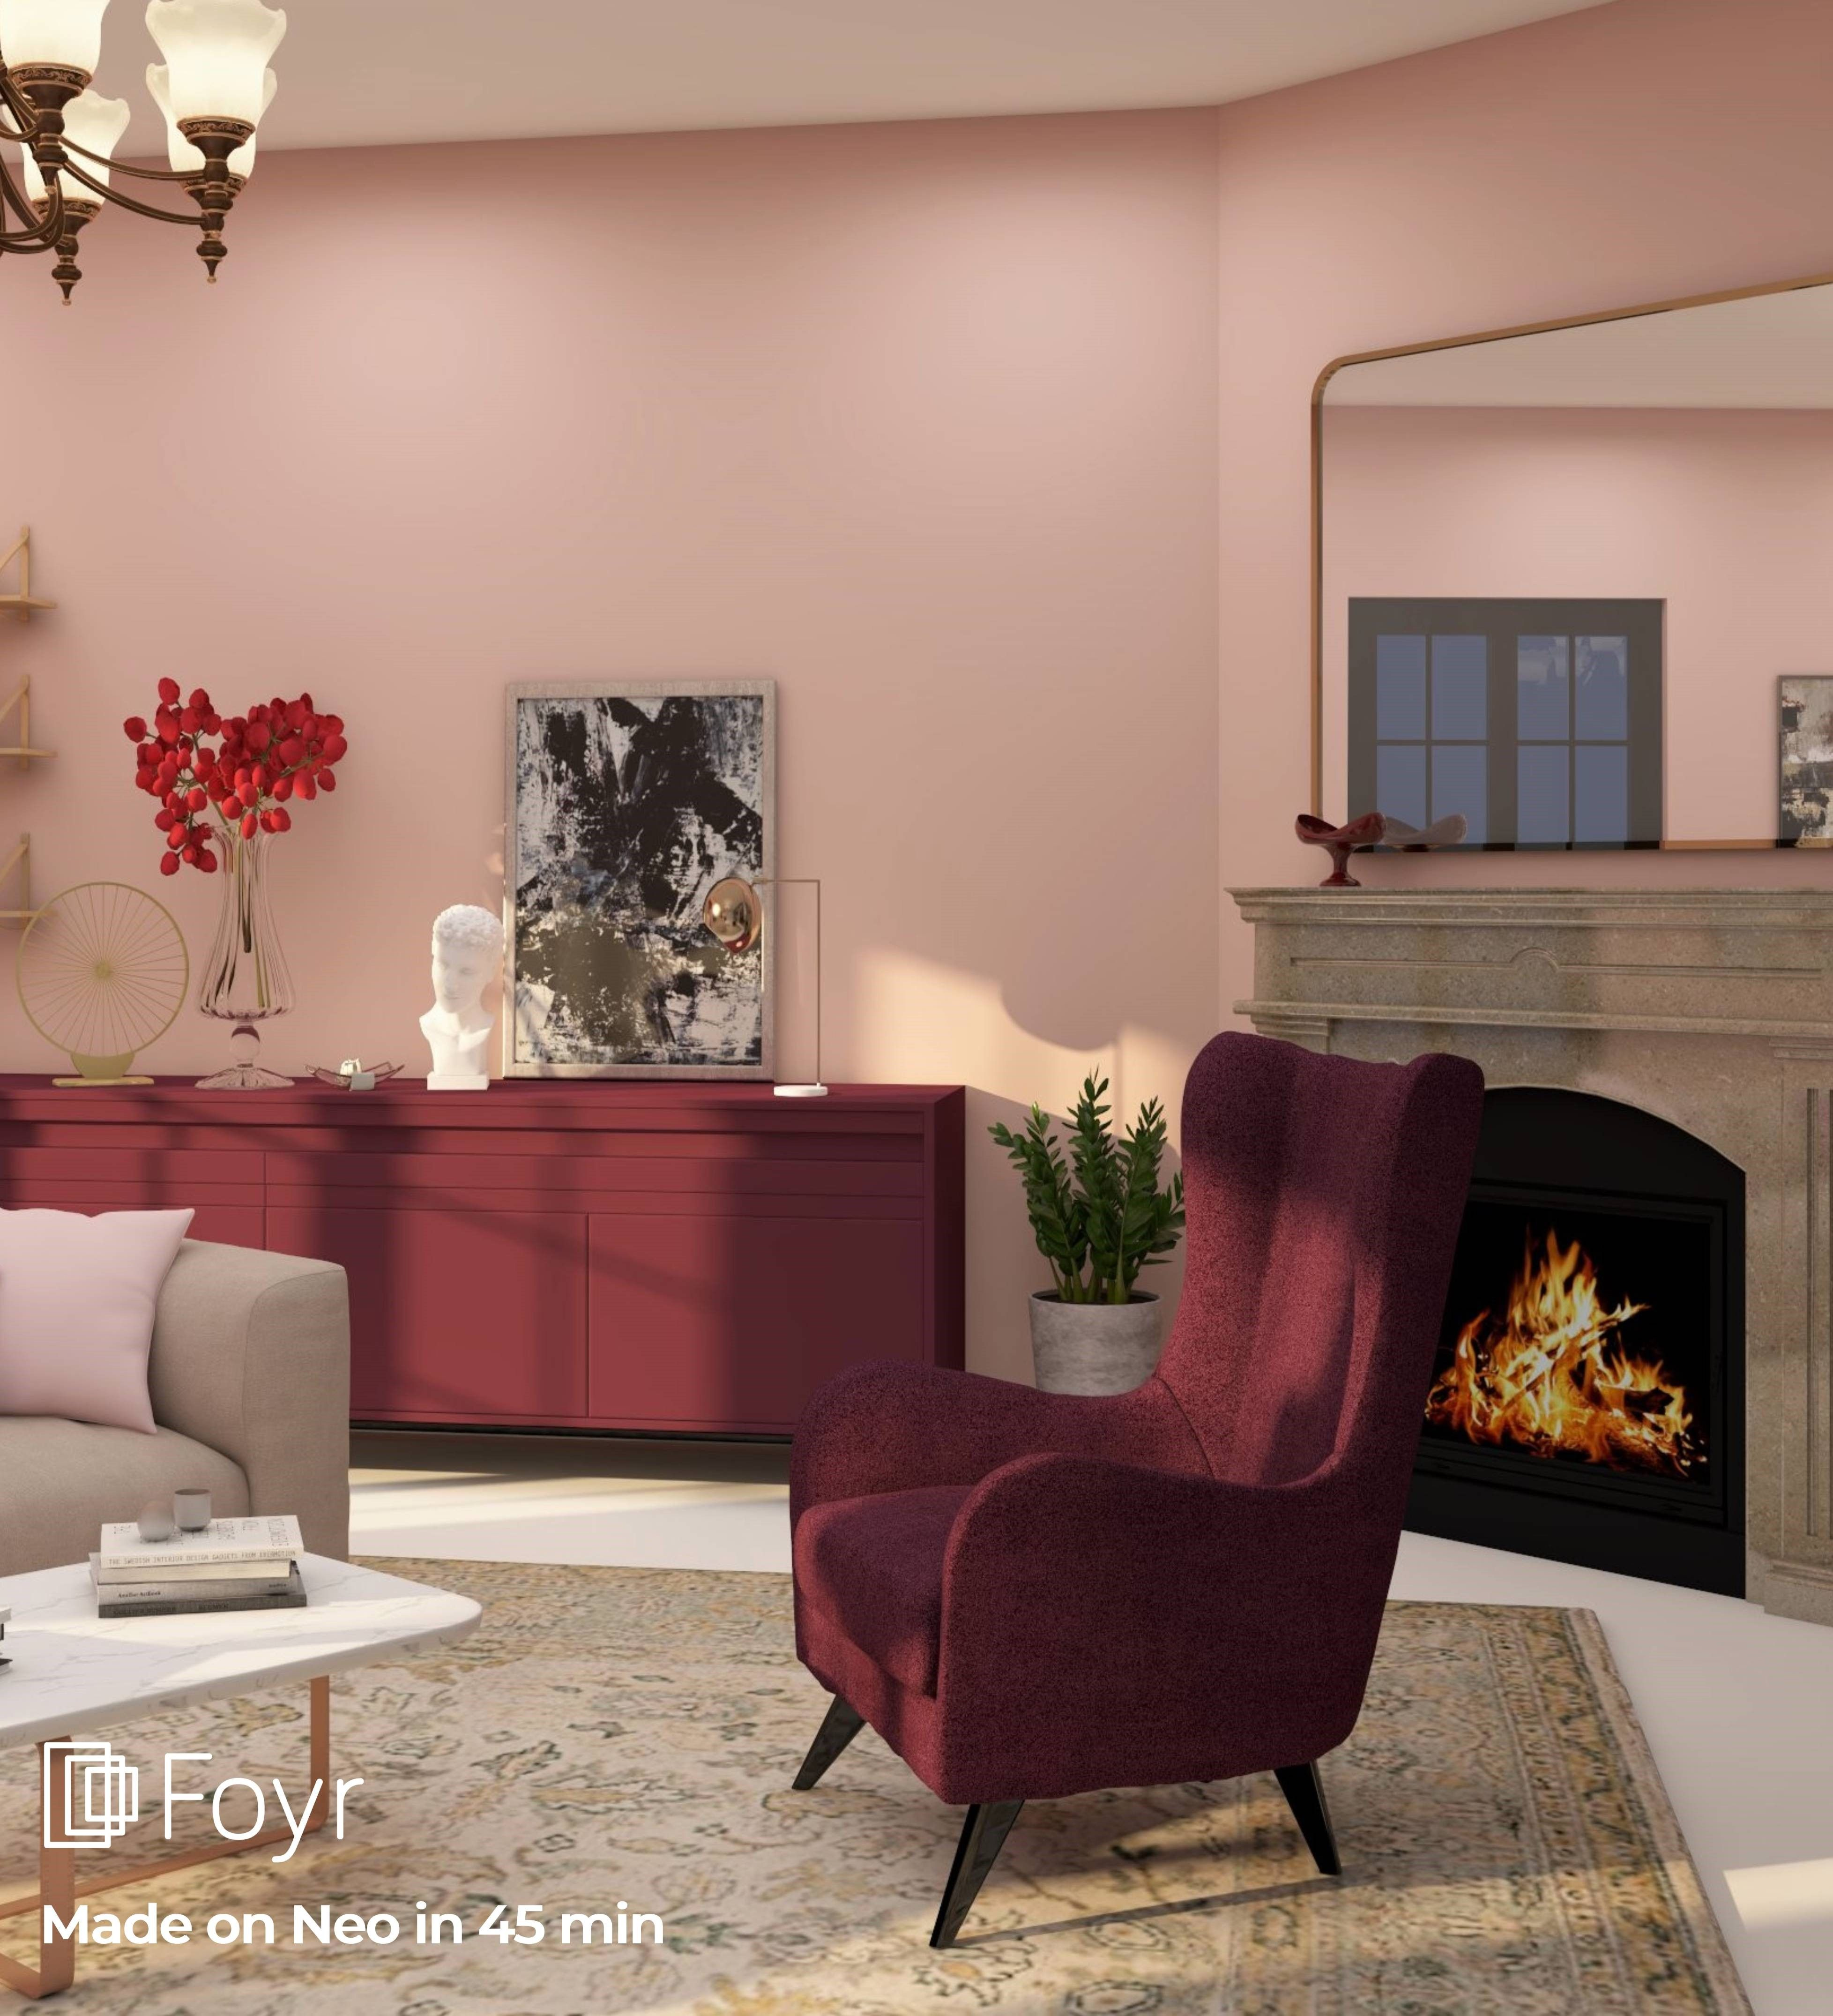 In this living room, the wall is painted with first light that perfectly matches with burgundy high back chair and sideboard. And with traditional chandelier and light vintage rug and a cozy fireplace. #foyrneo #interiordesignideas #redcolor #burgundy #homedecor #interiordesign #interiordecoration #architecture #beautifulhomes #interiorhome #livingroom #architecturaldigest #eclecticstyle #corner #3ddesignsoftware